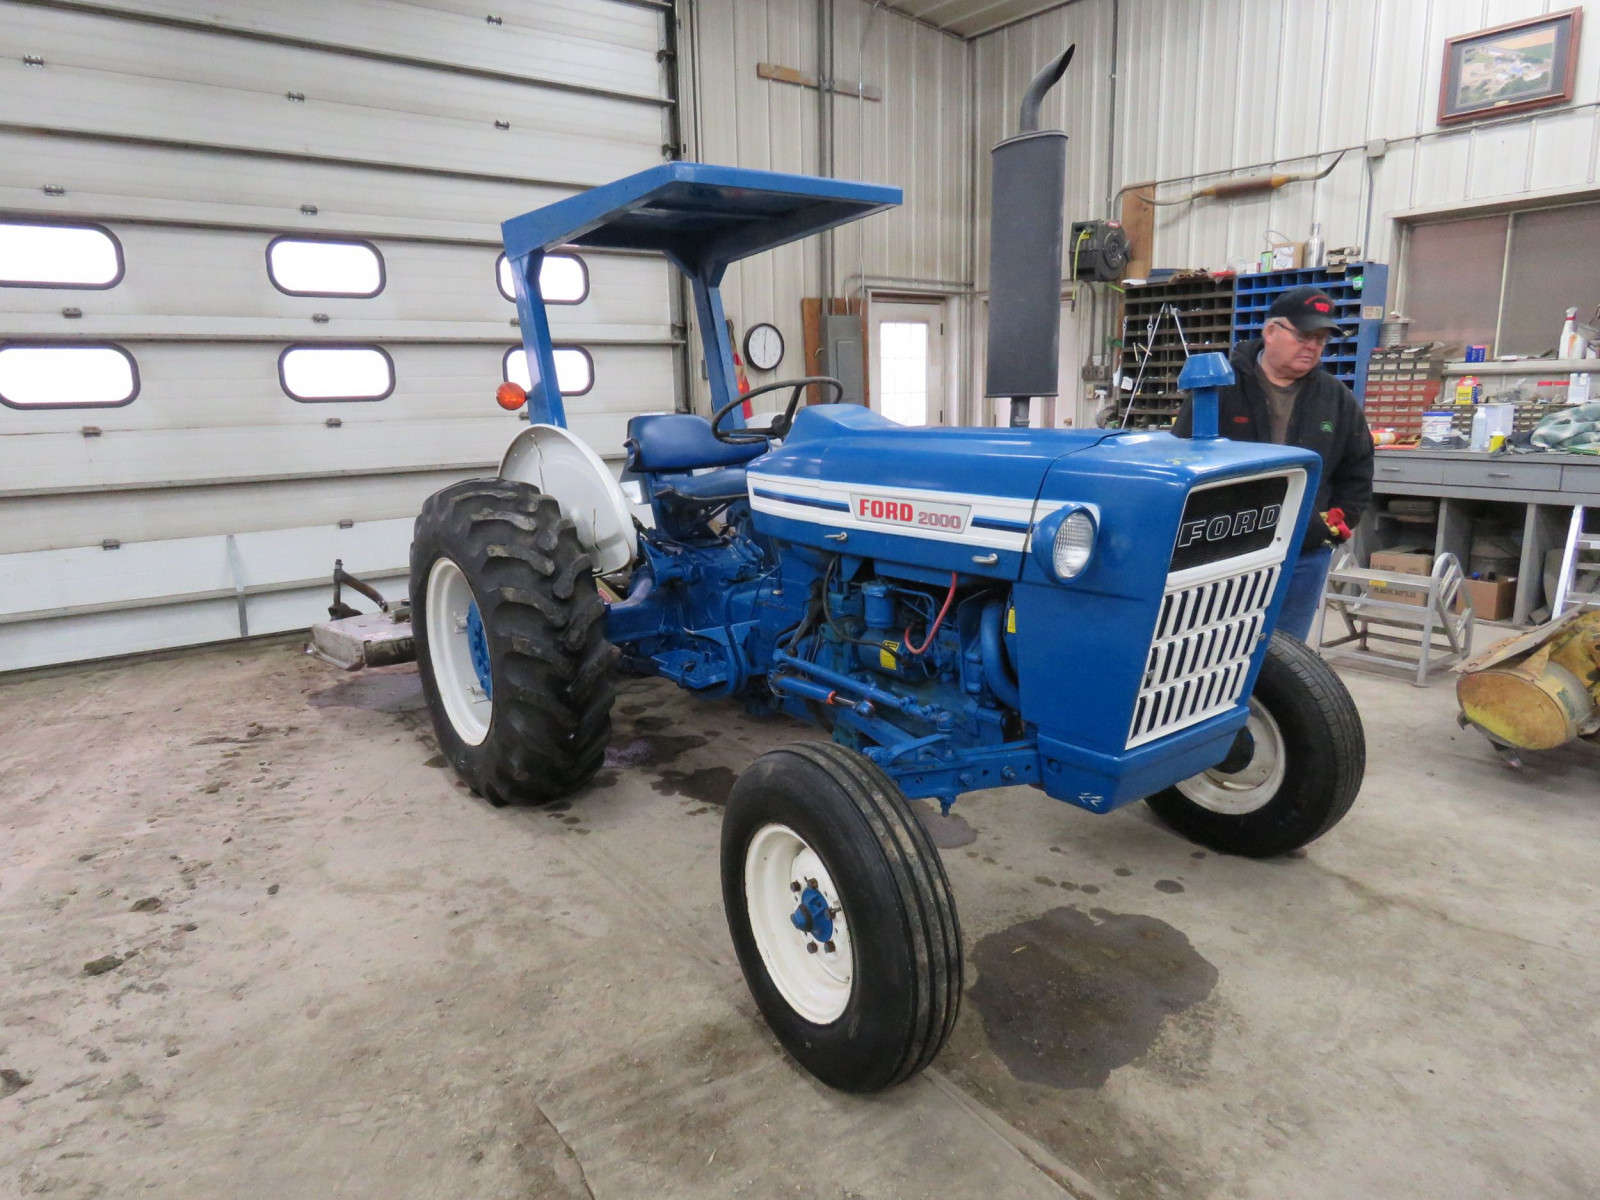 1972 Ford 2000 Tractor - Image 1